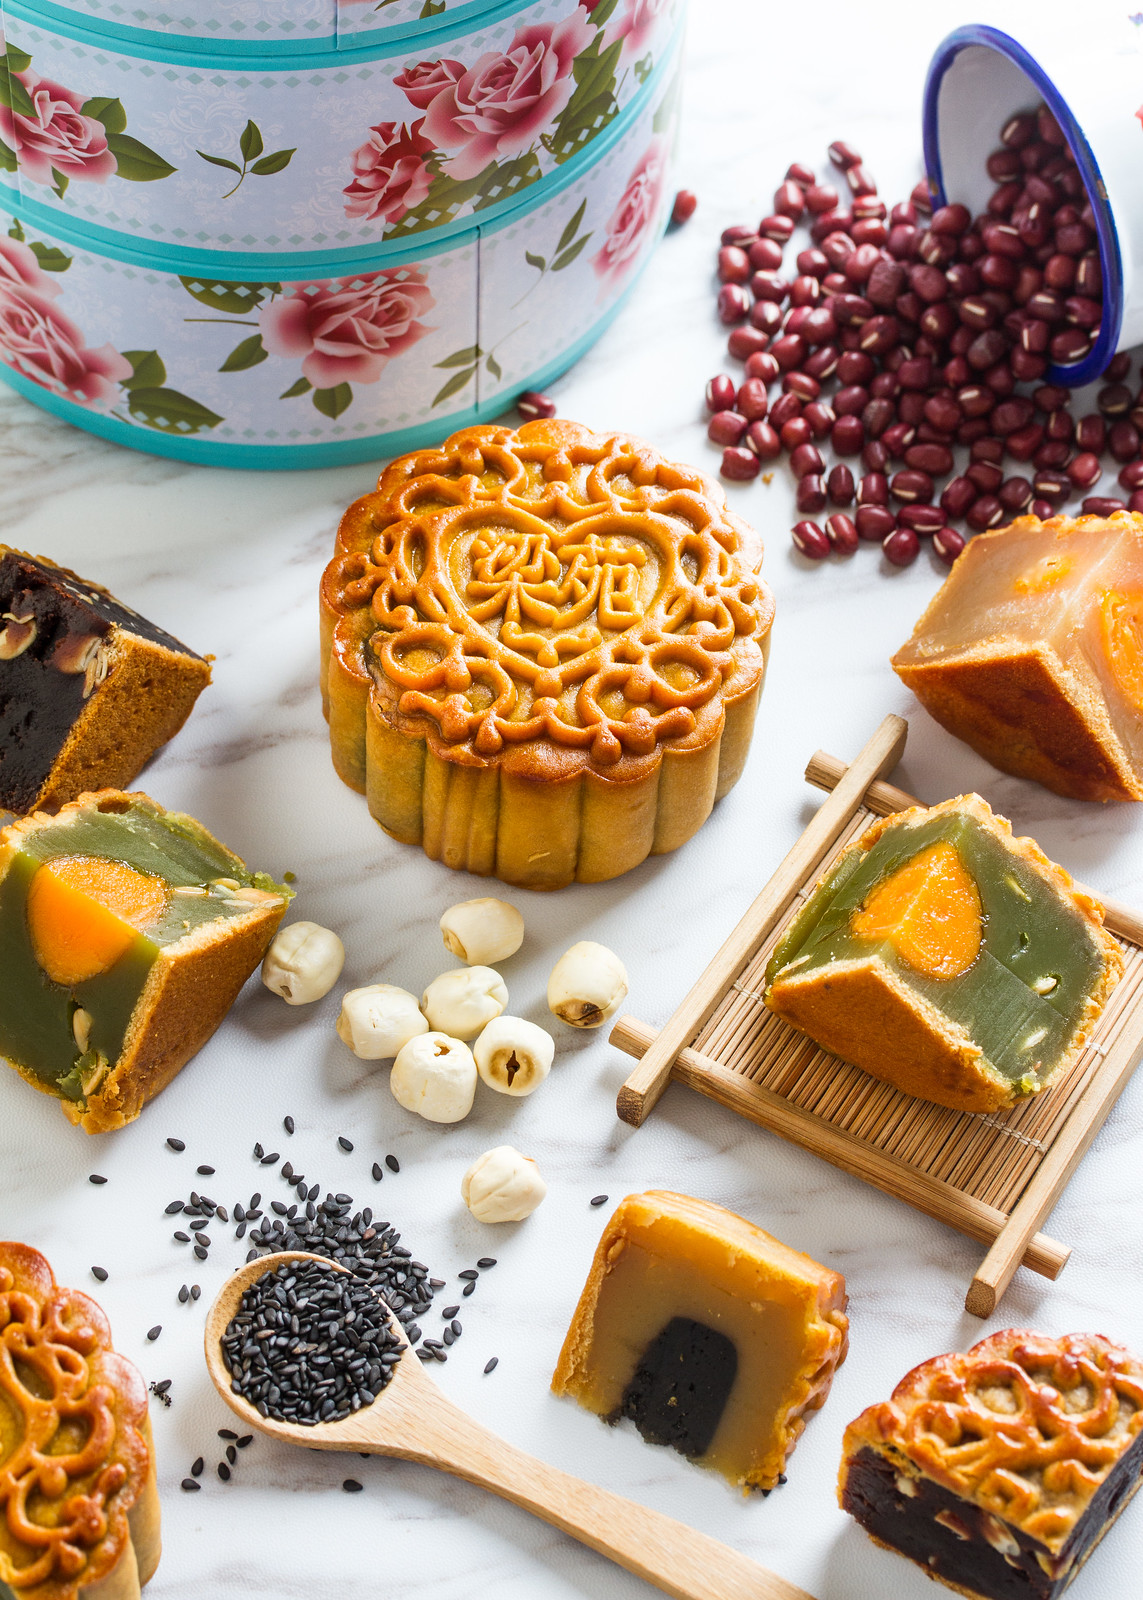 Neo Garden Catering Four Treasures set - Assorted Fruits & Nuts mooncake, Double Yolk White Lotus Seed mooncake, Fragrant Black Sesame mooncake and Single Yolk Emerald Lotus Seed mooncake.